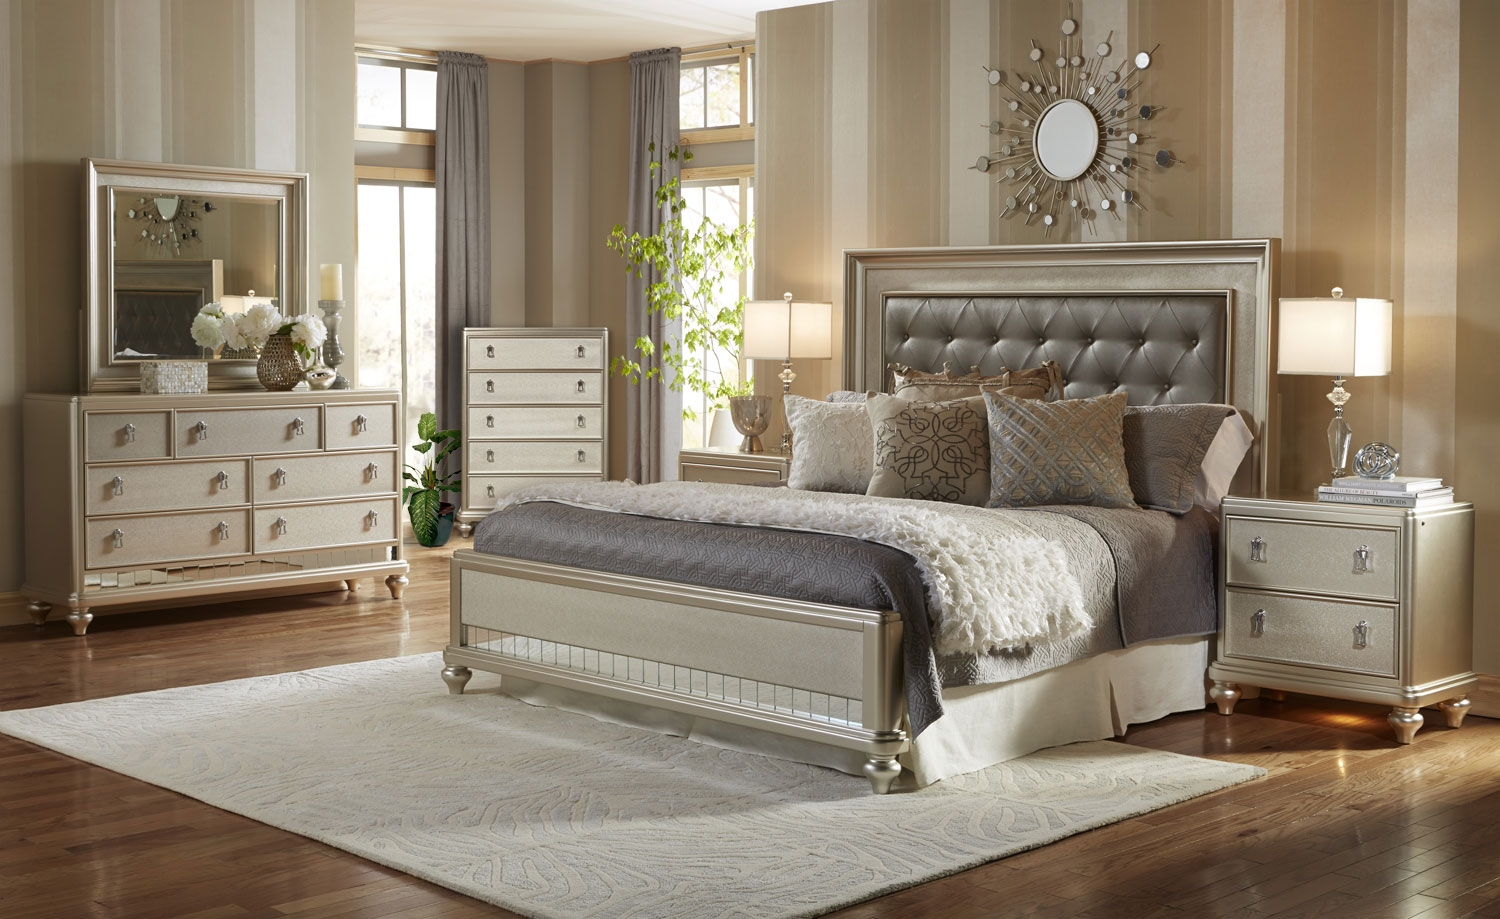 Image of: Bedroom Ideas for Couples